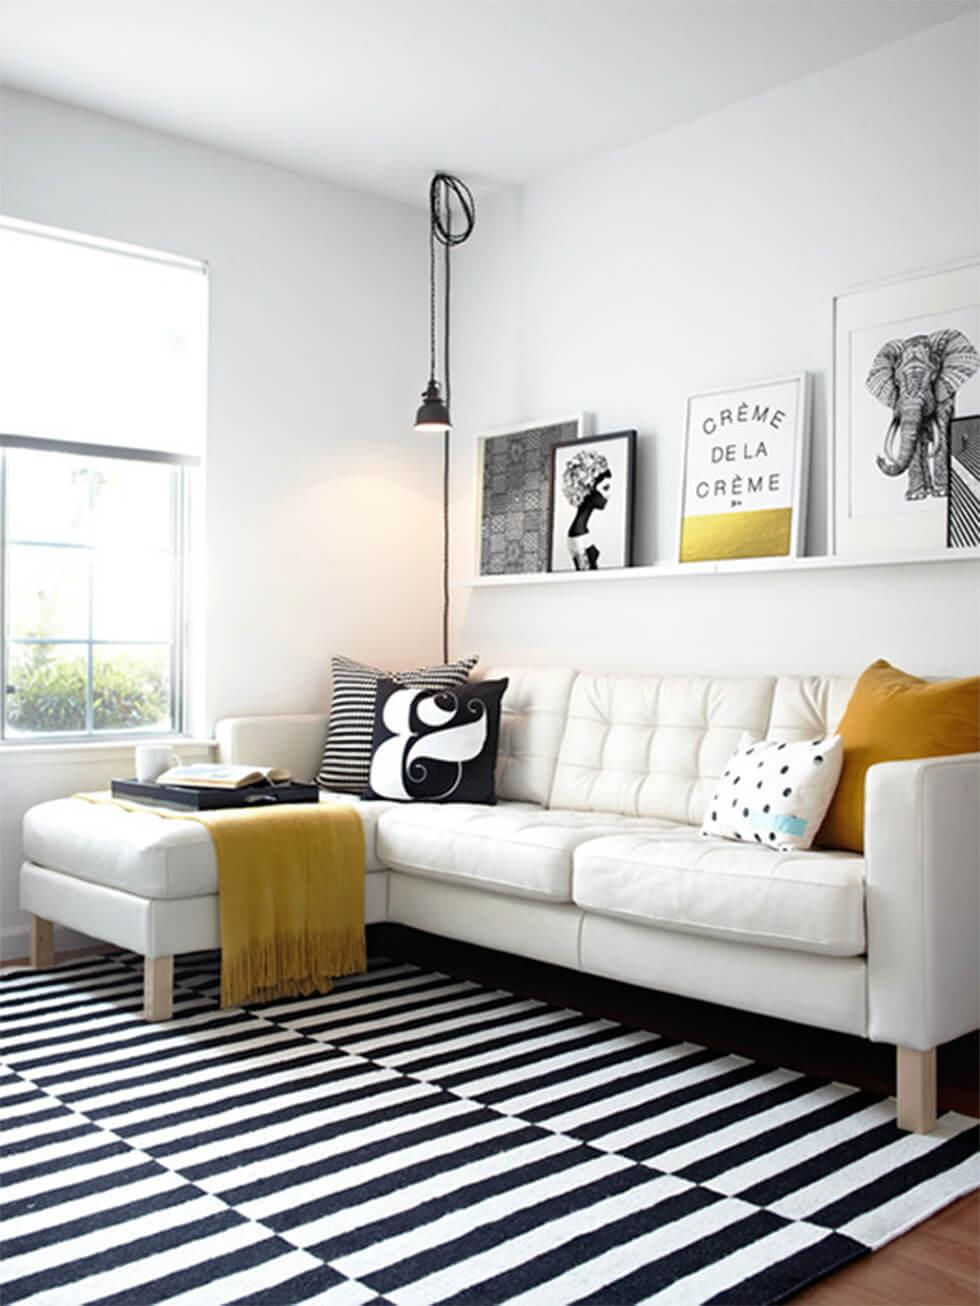 Cosy white corner sofa with a black and white rug in a bright and airy living room.